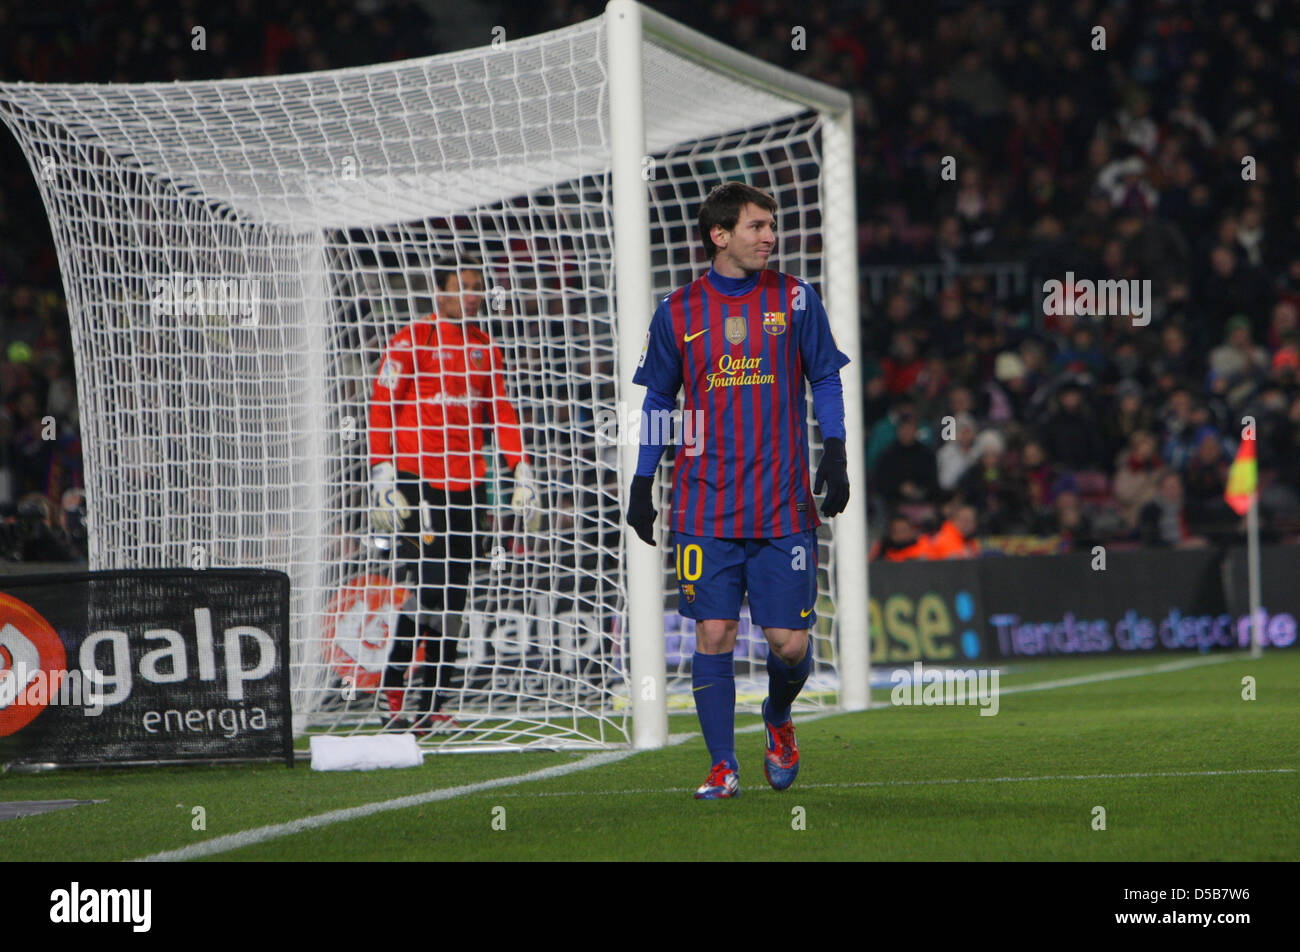 Barcelona, Spain, Leo Messi of FC Barcelona with number 10 - Stock Image